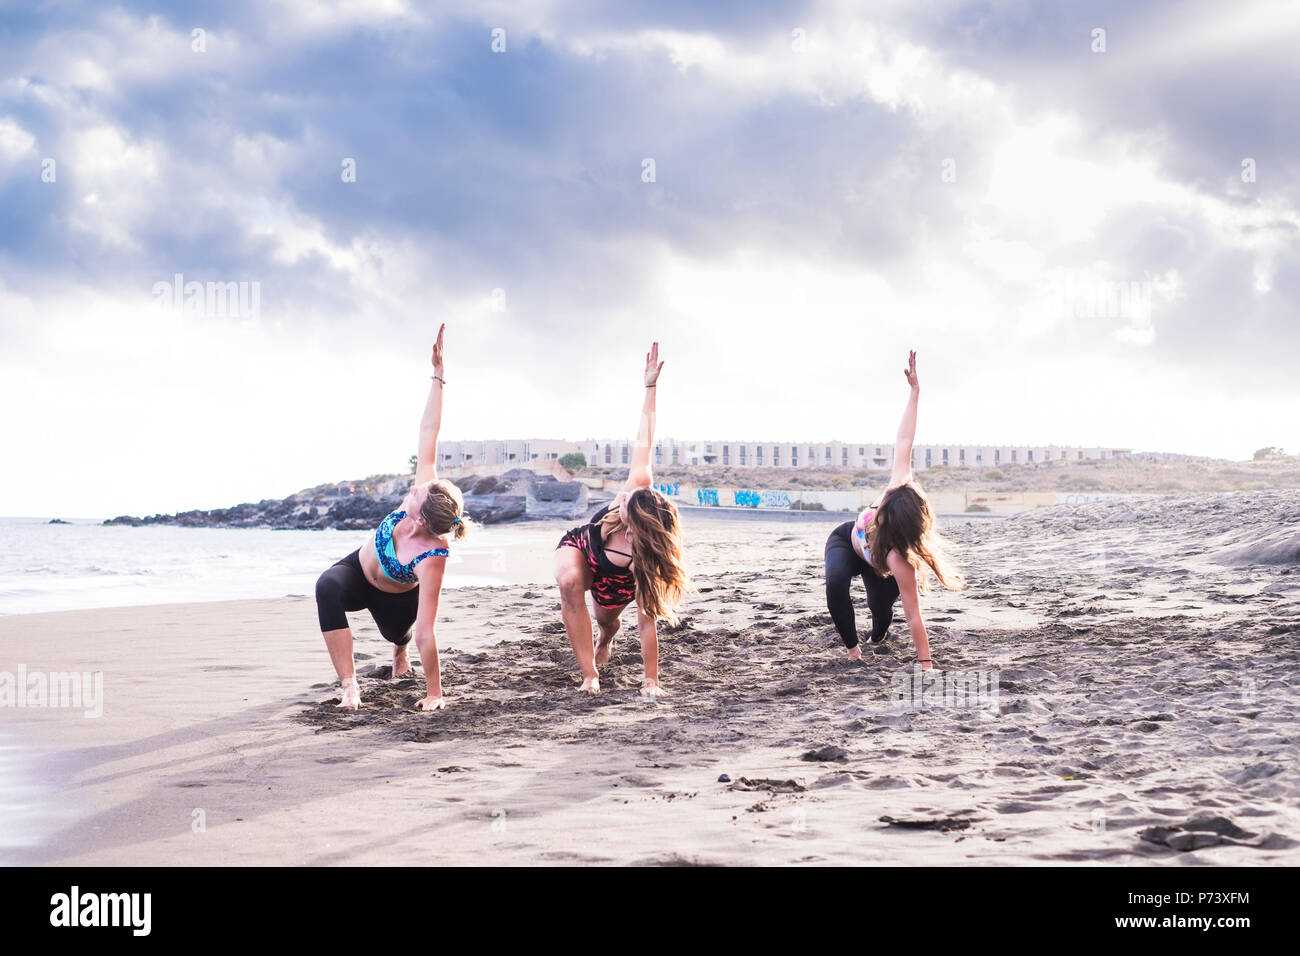 group of three people women friends do exercises of balance and strenght like yoga and pilates on the beach. coast and sand scenic place during beauti - Stock Image